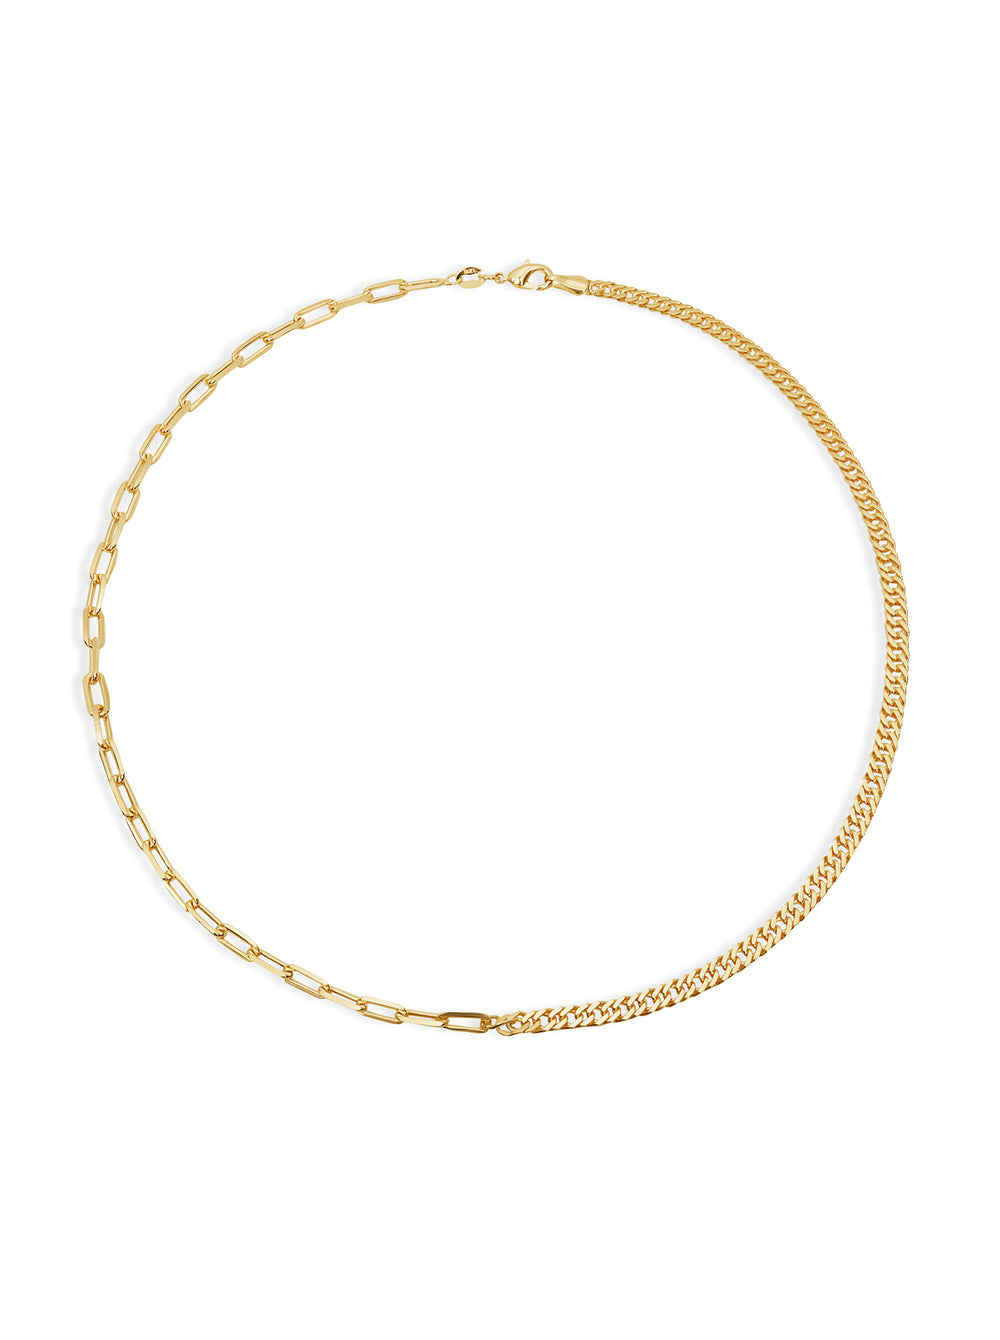 THE CUBAN REDA LINK SPLIT CHAIN NECKLACE